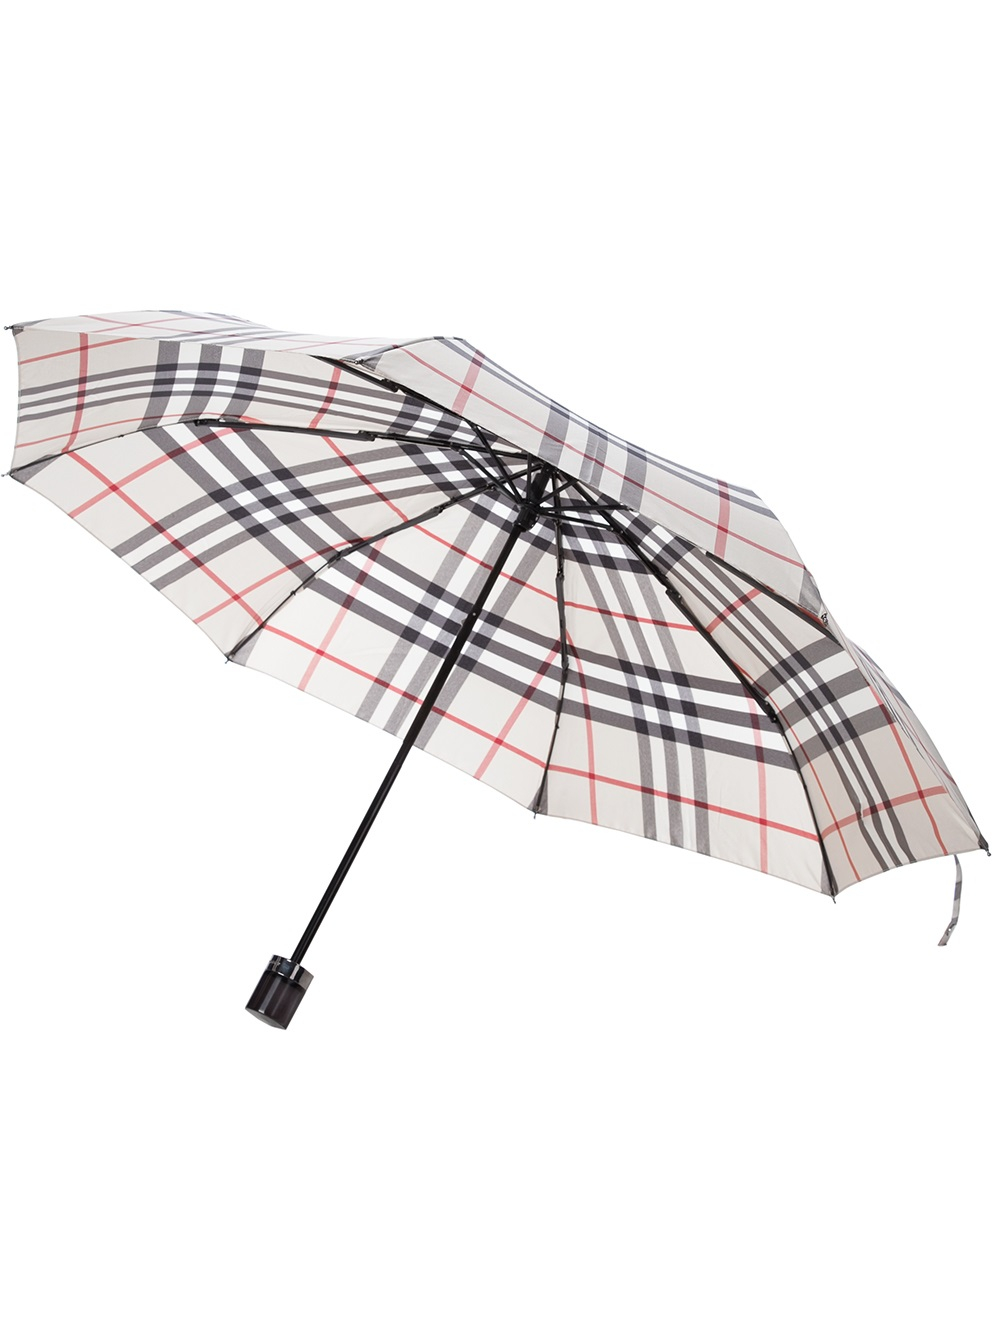 33da0cb7ede Lyst - Burberry Trafalgar Umbrella in Gray